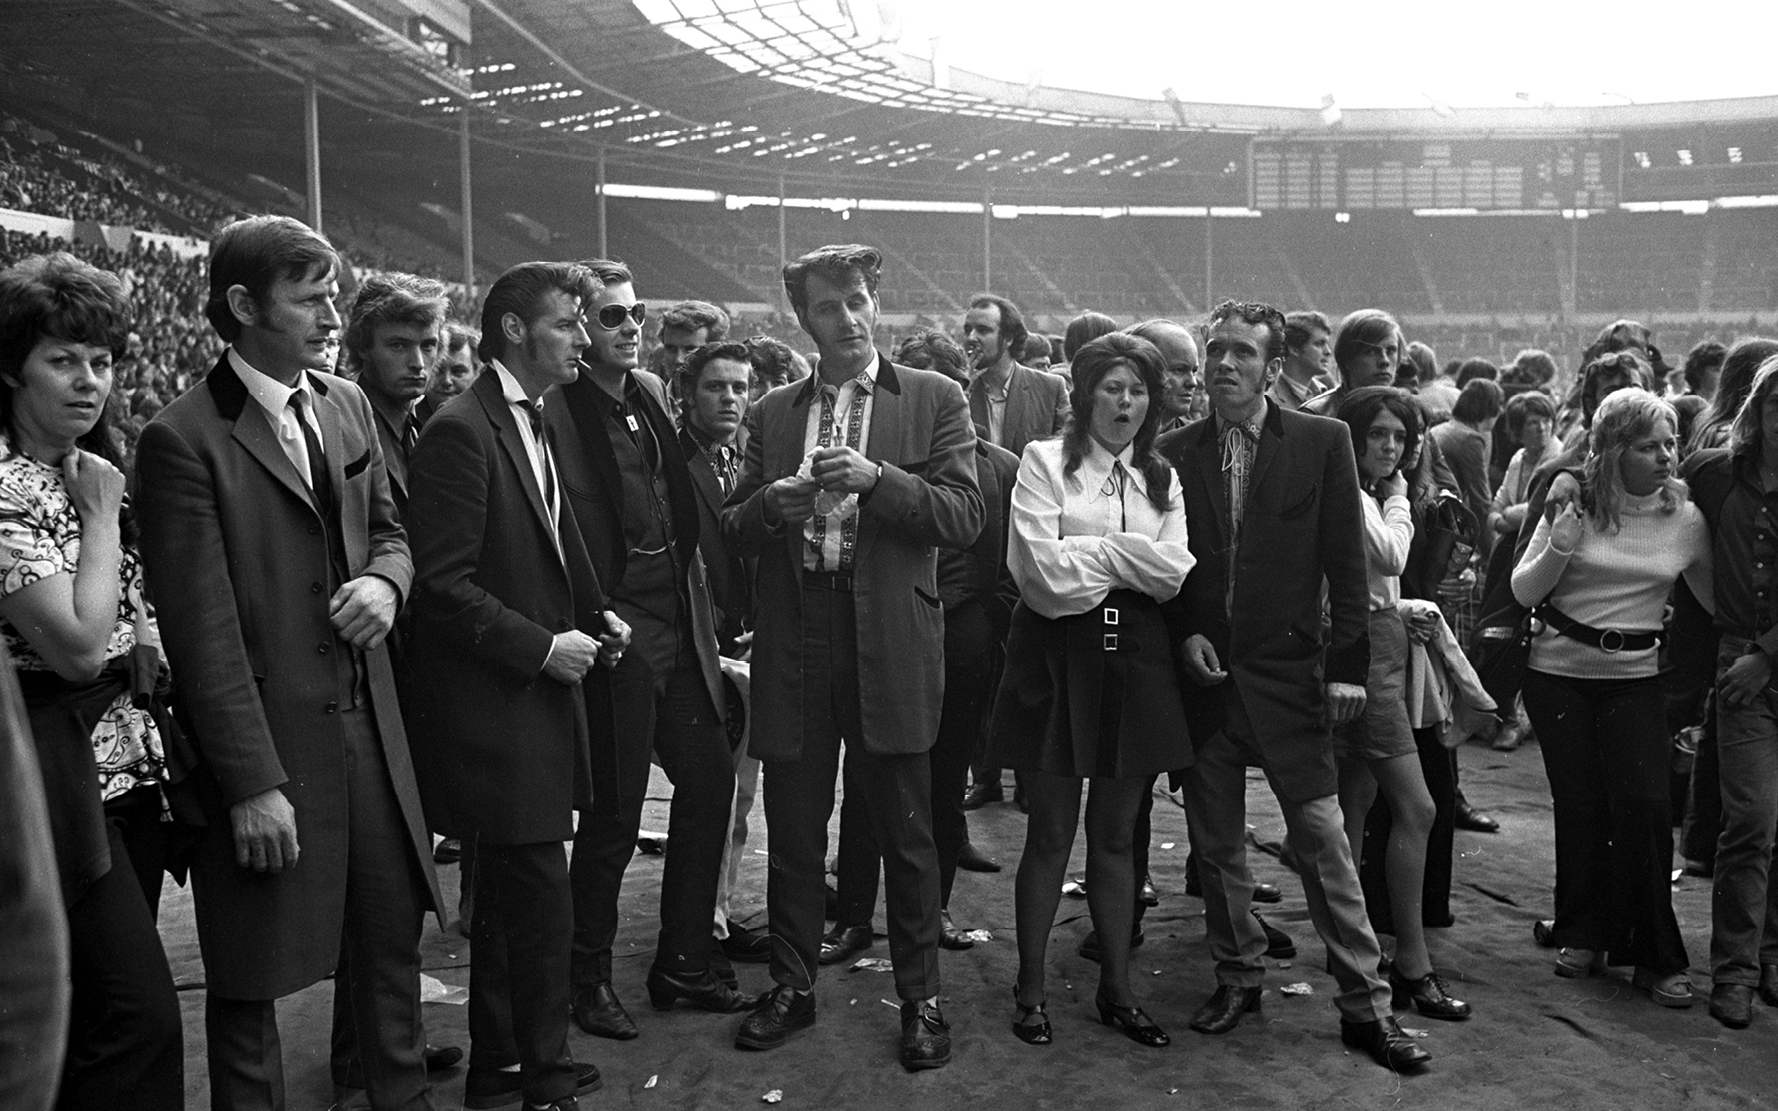 Teddy Boys at a Pop concert, Wembley, 1972. © Brian Moody / Rex Features / PYMCA